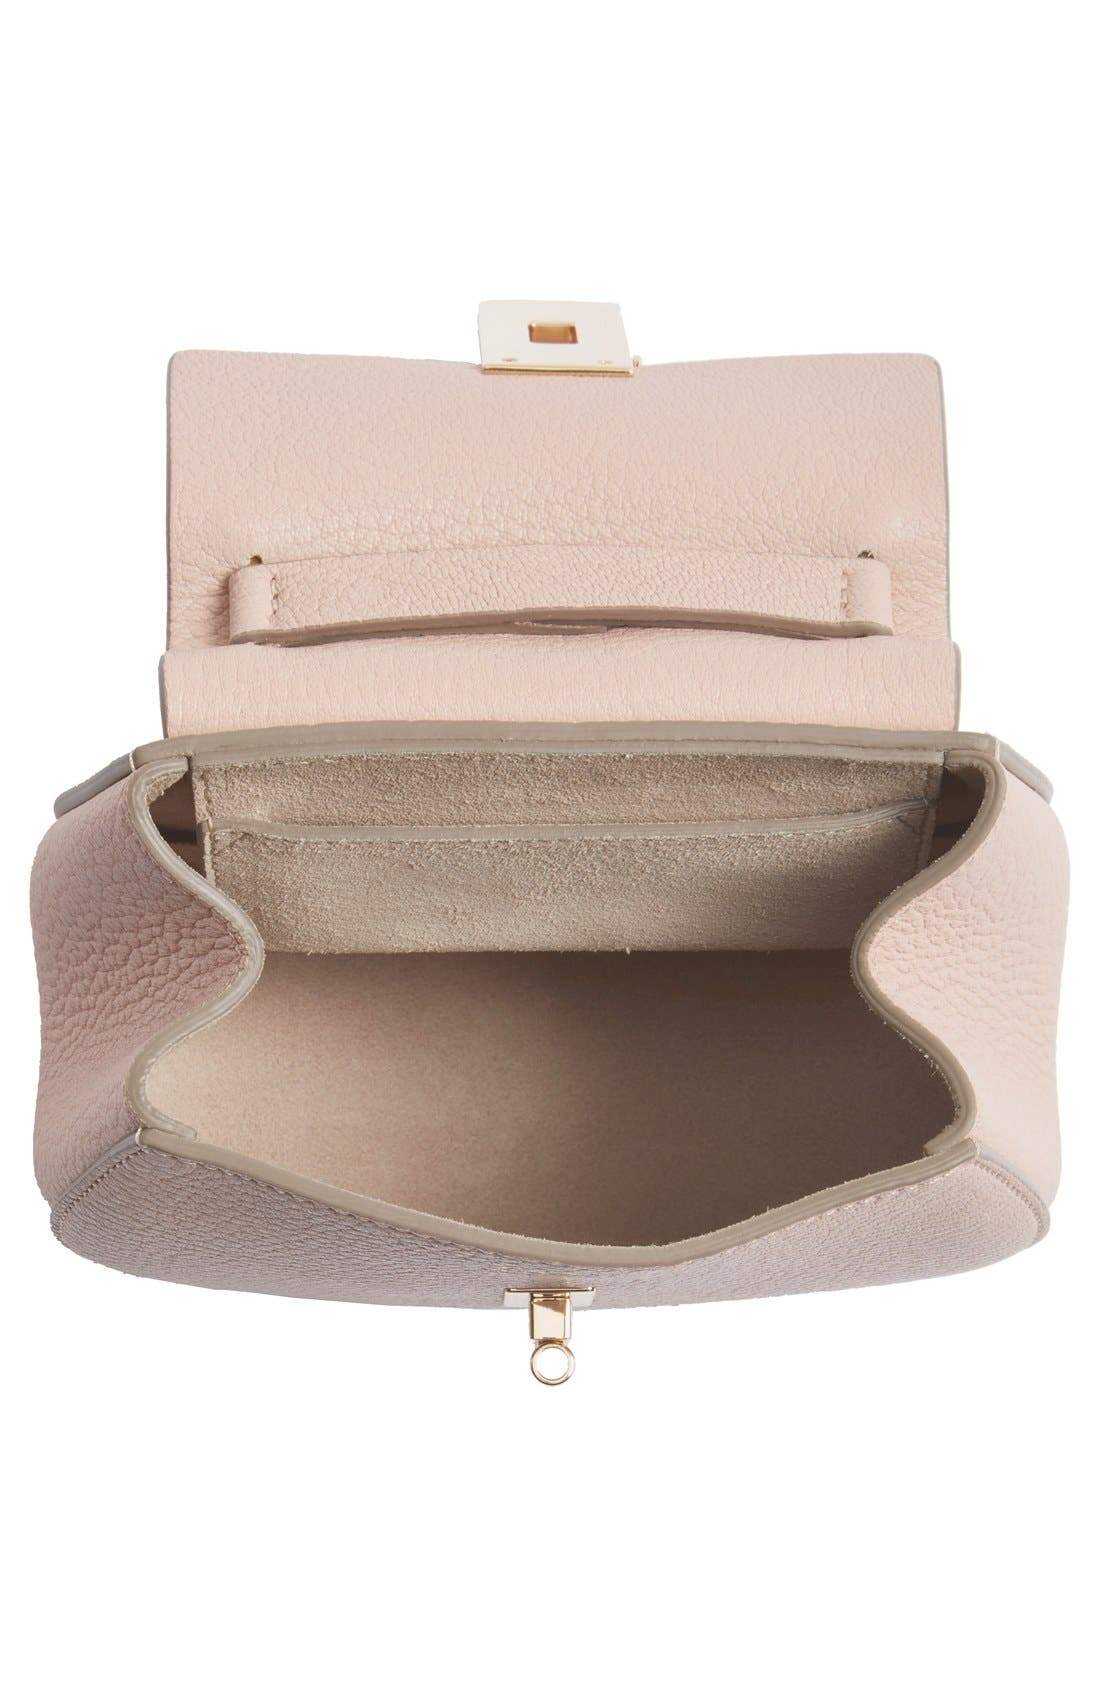 Alternate Image 2  - Chloé 'Nano Drew' Lambskin Leather Shoulder Bag